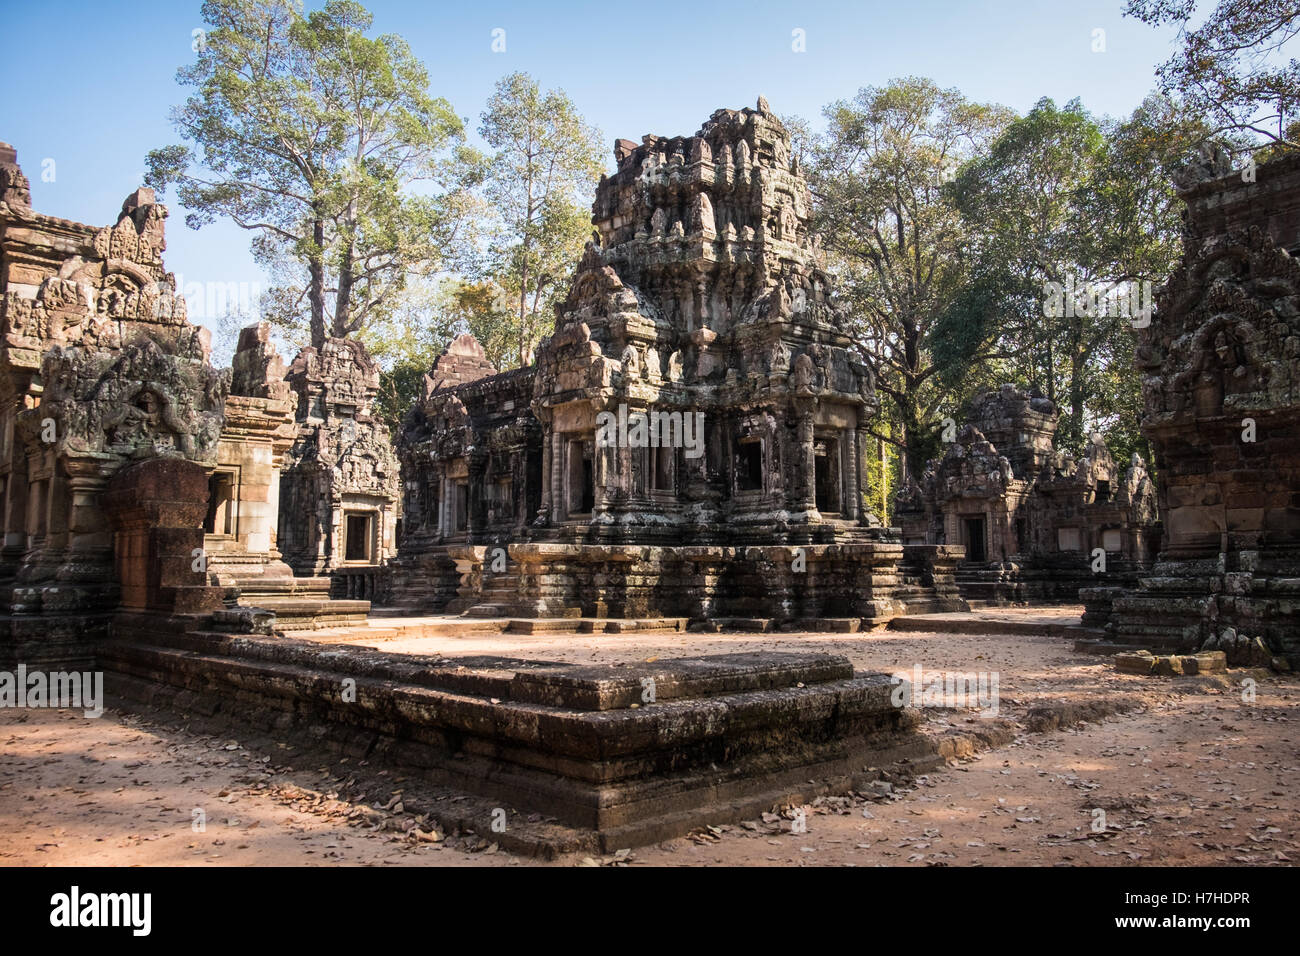 A general view of Chau Say temple in the Siem Reap, Cambodia - Stock Image